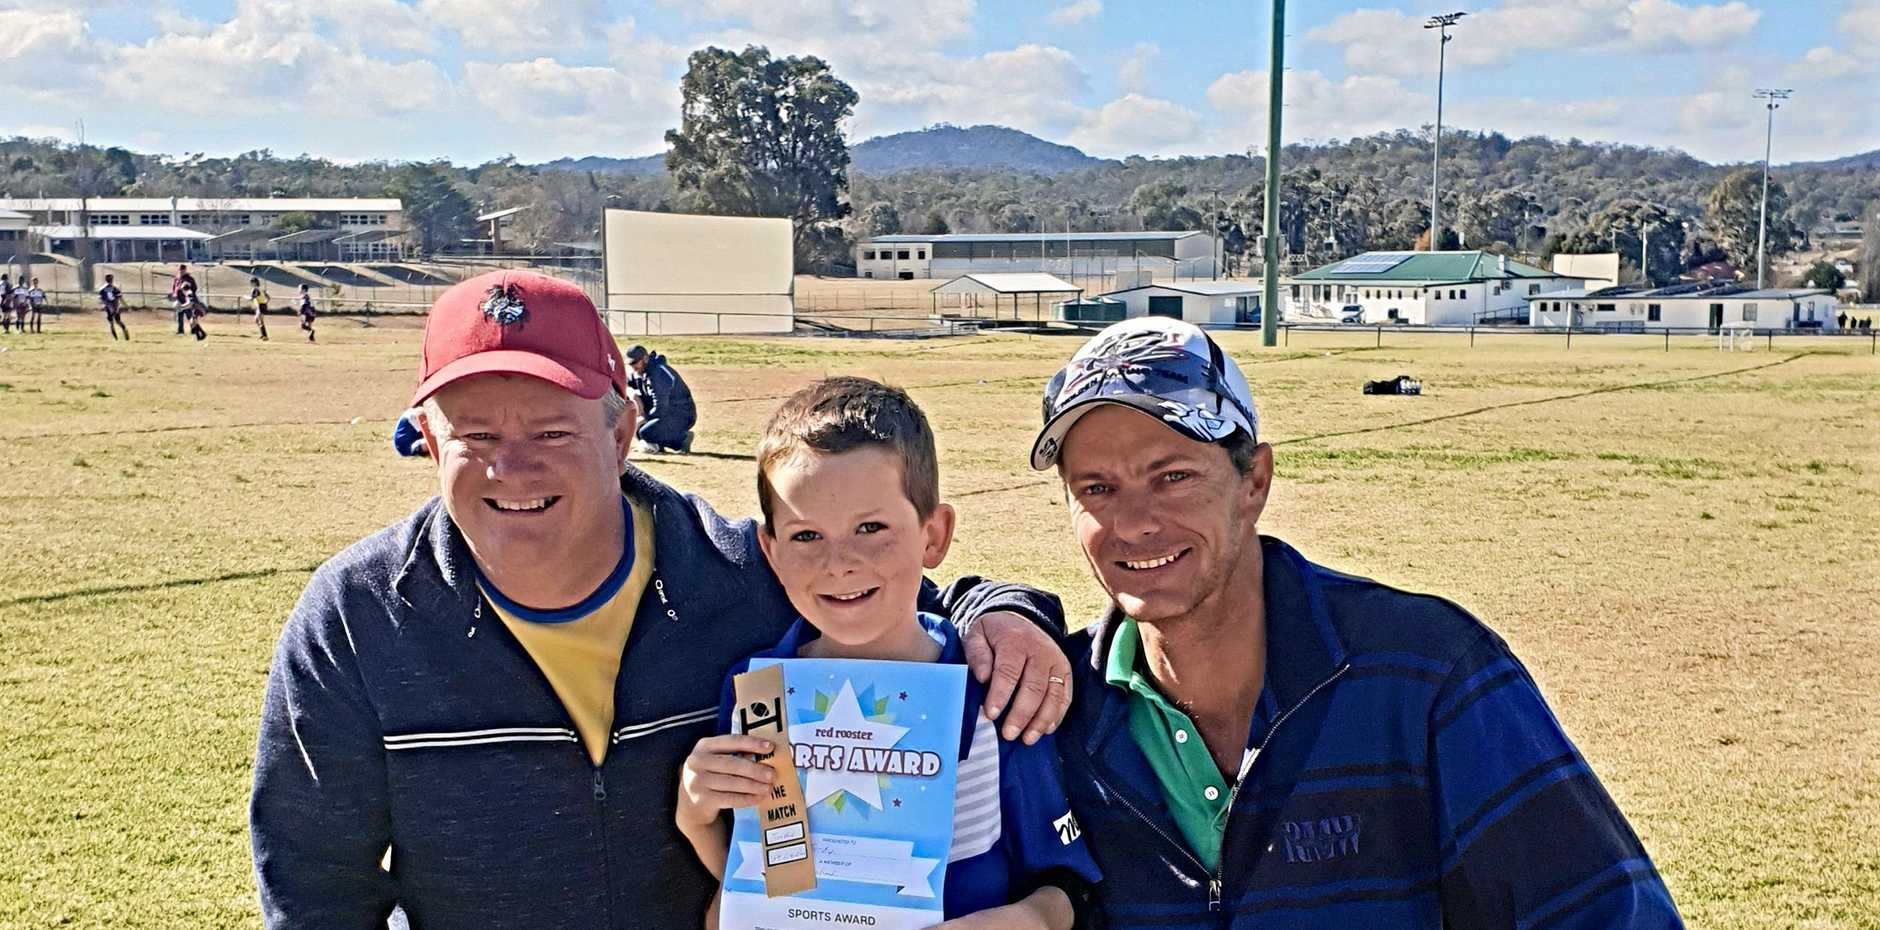 BIG EFFORT: Under-8's junior Gremlins player Jordy was named the Red Rooster Man of the Match in his game against Warwick Suburbs on Saturday.